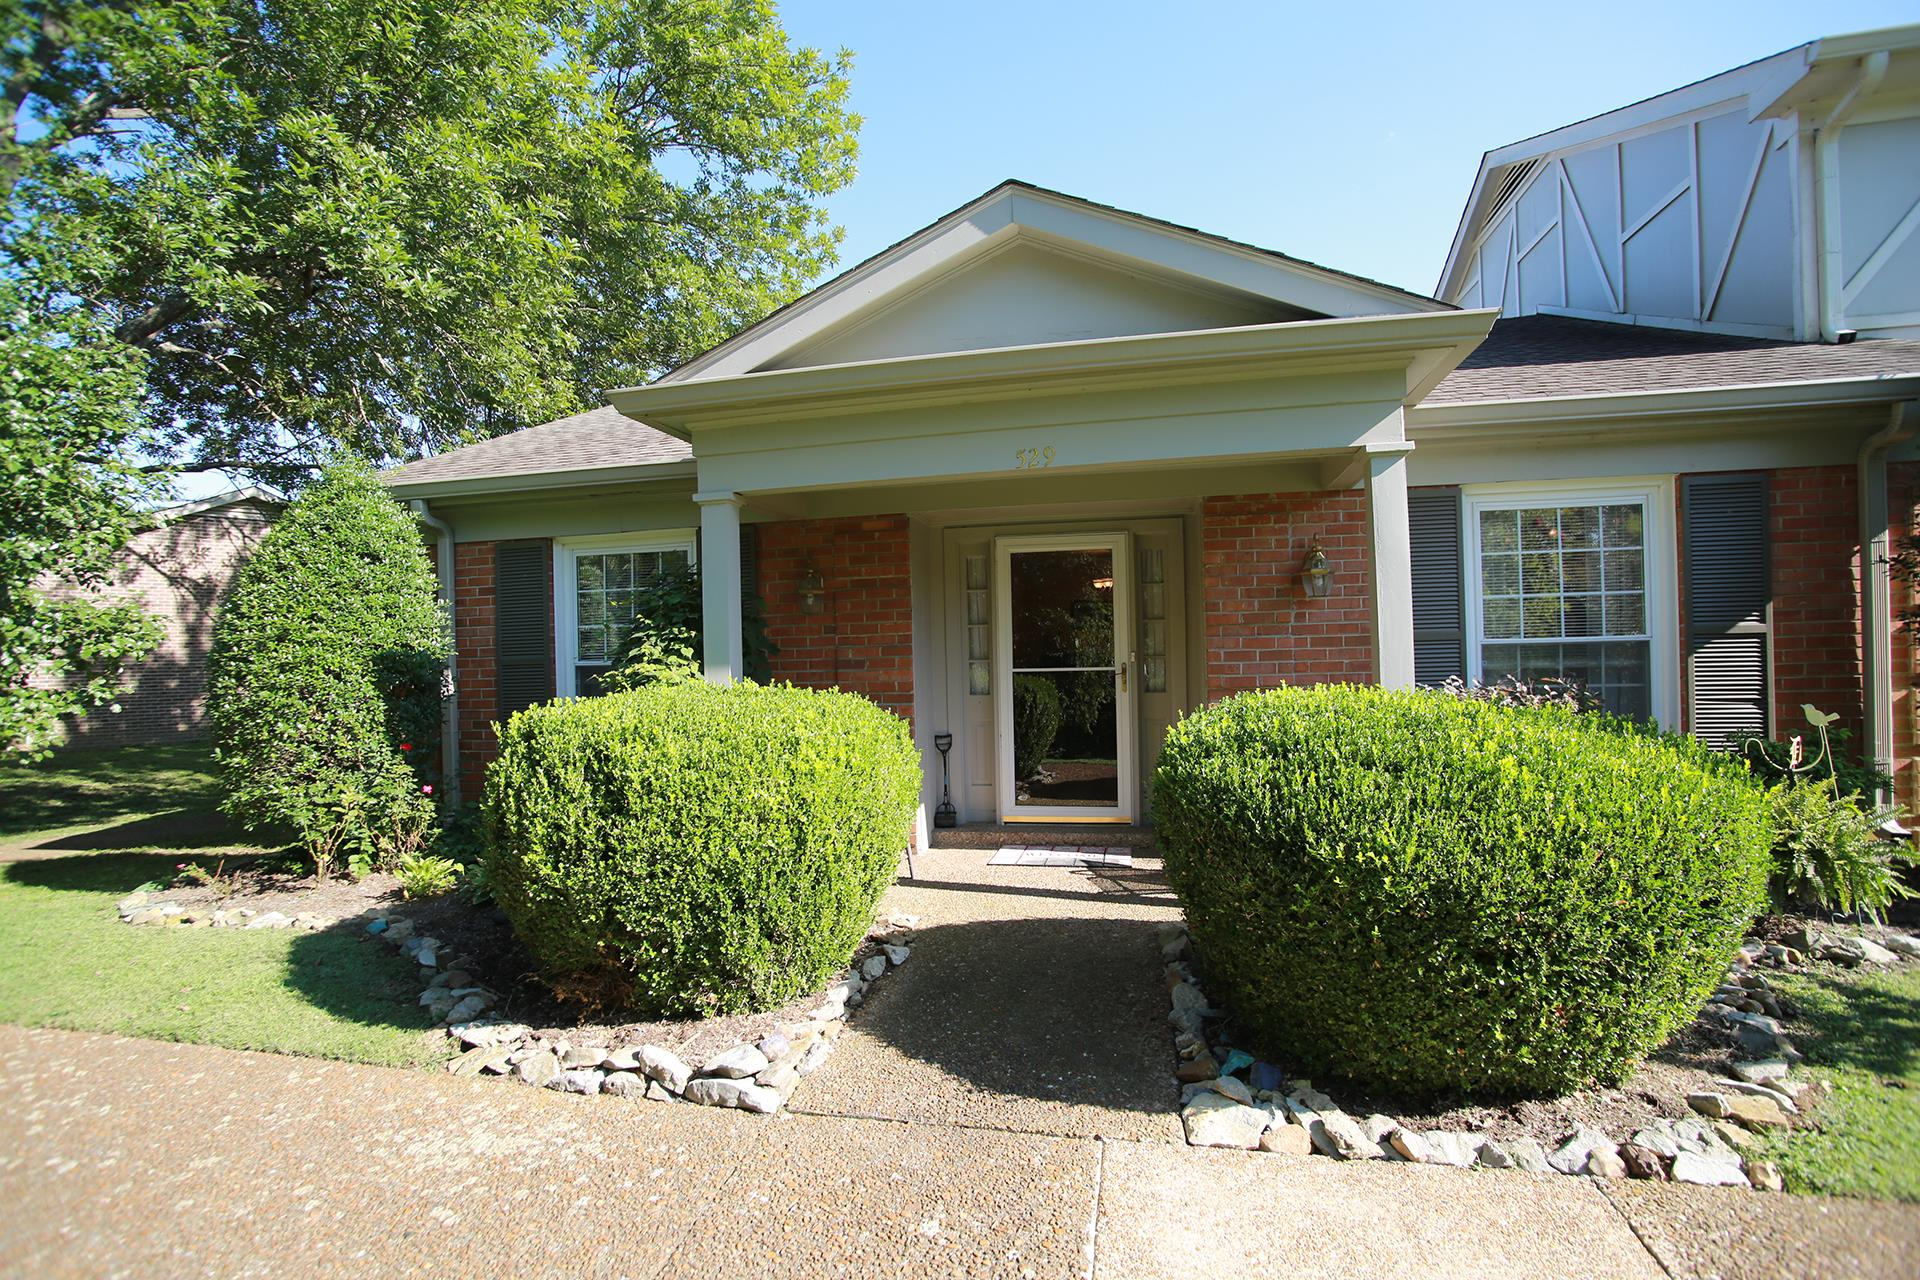 529 Plantation Ct, Bellevue in Davidson County County, TN 37221 Home for Sale